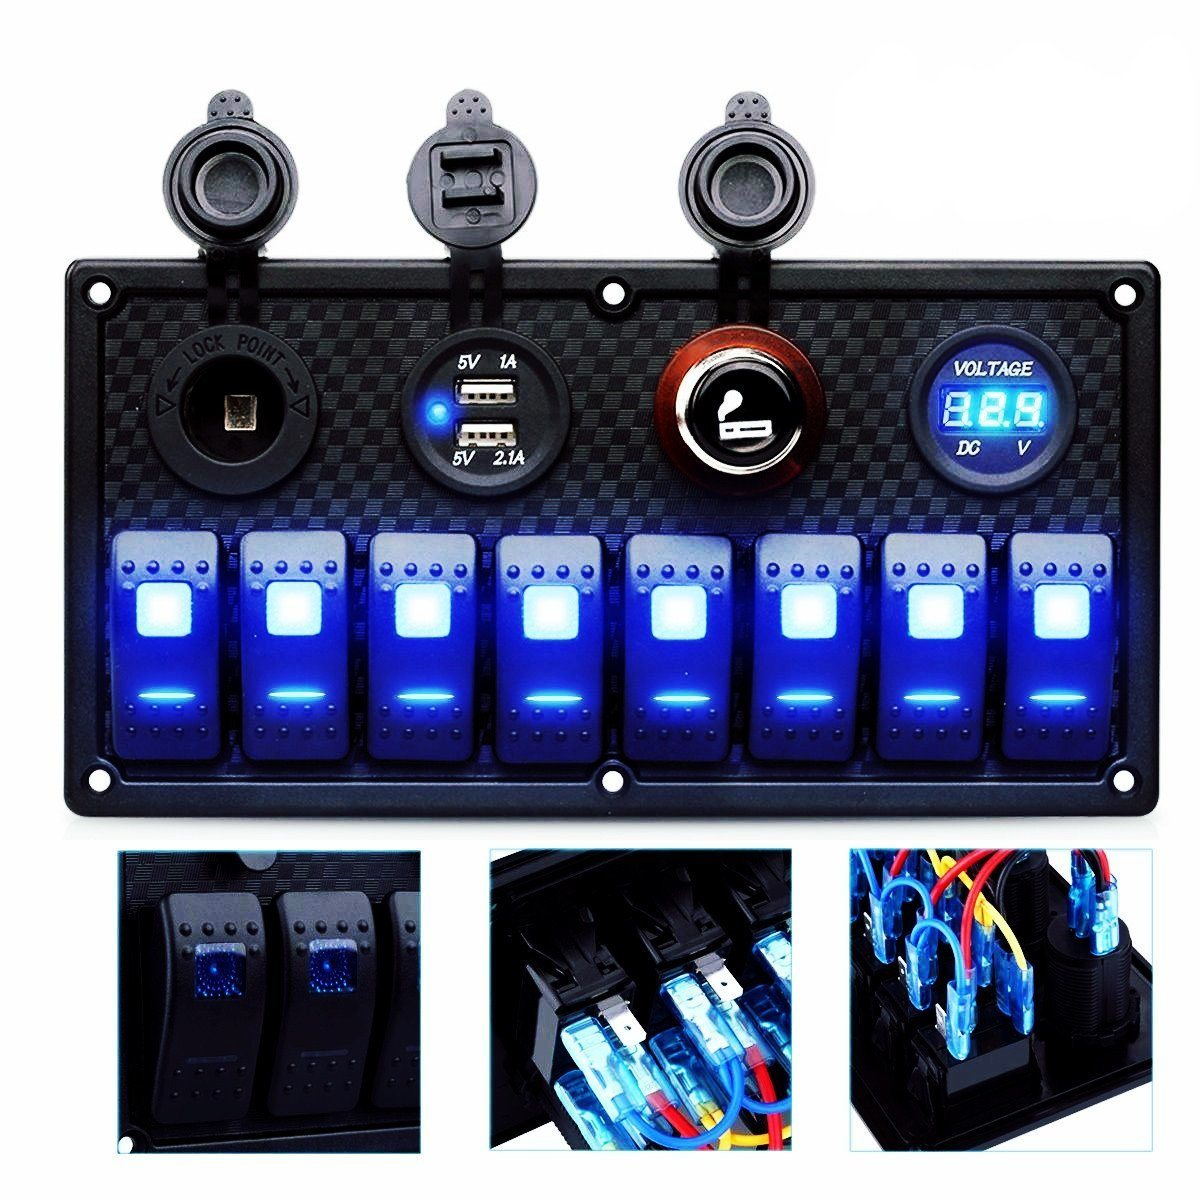 hight resolution of china rocker switch panel fuse usb power socket breaker voltmeter china rocker switch panel digital voltmeter